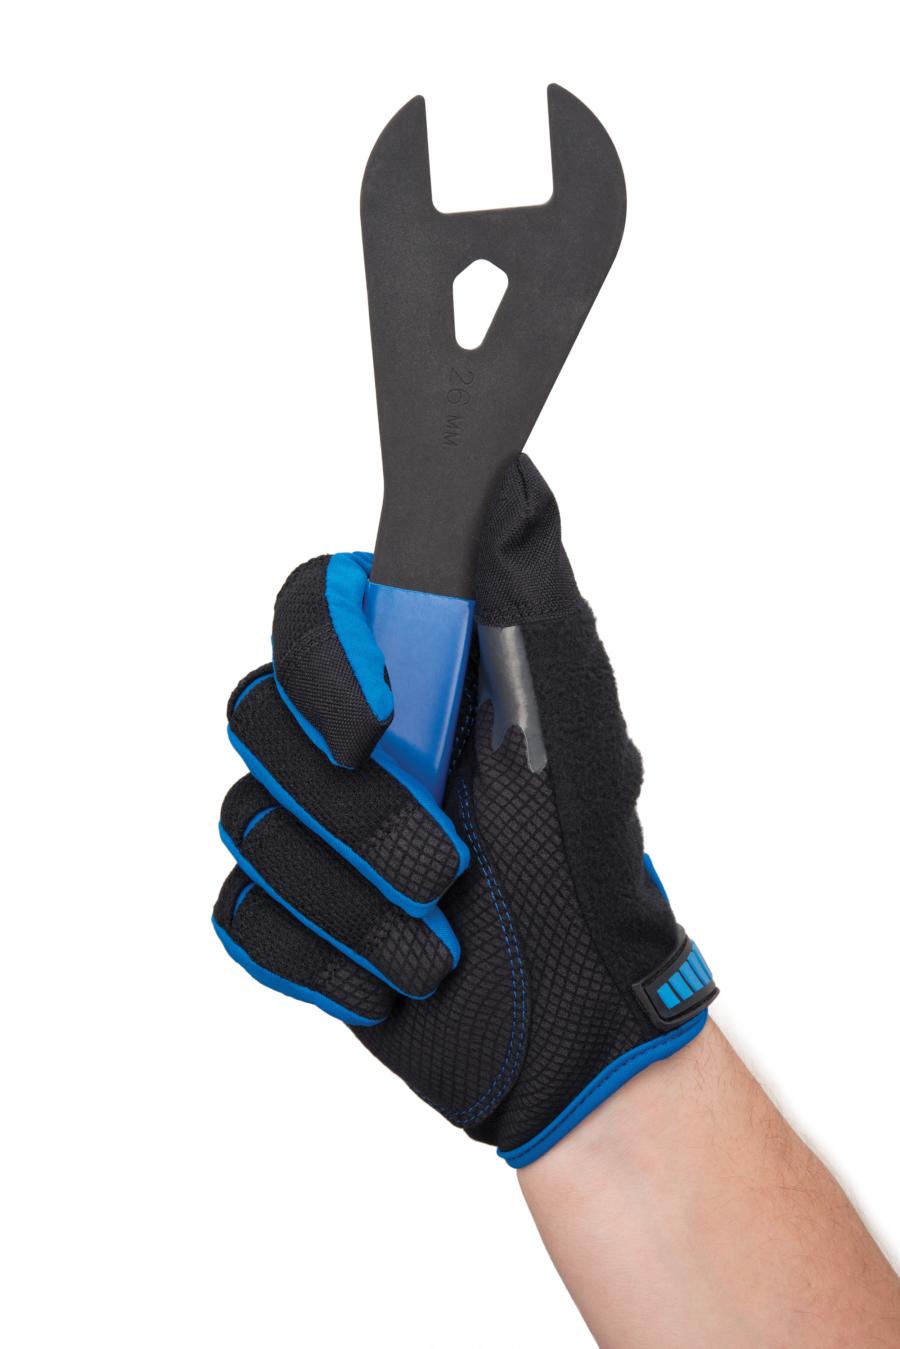 The Park Tool GLV-1 Mechanic's Gloves on hand gripping Park Tool cone wrench, enlarged